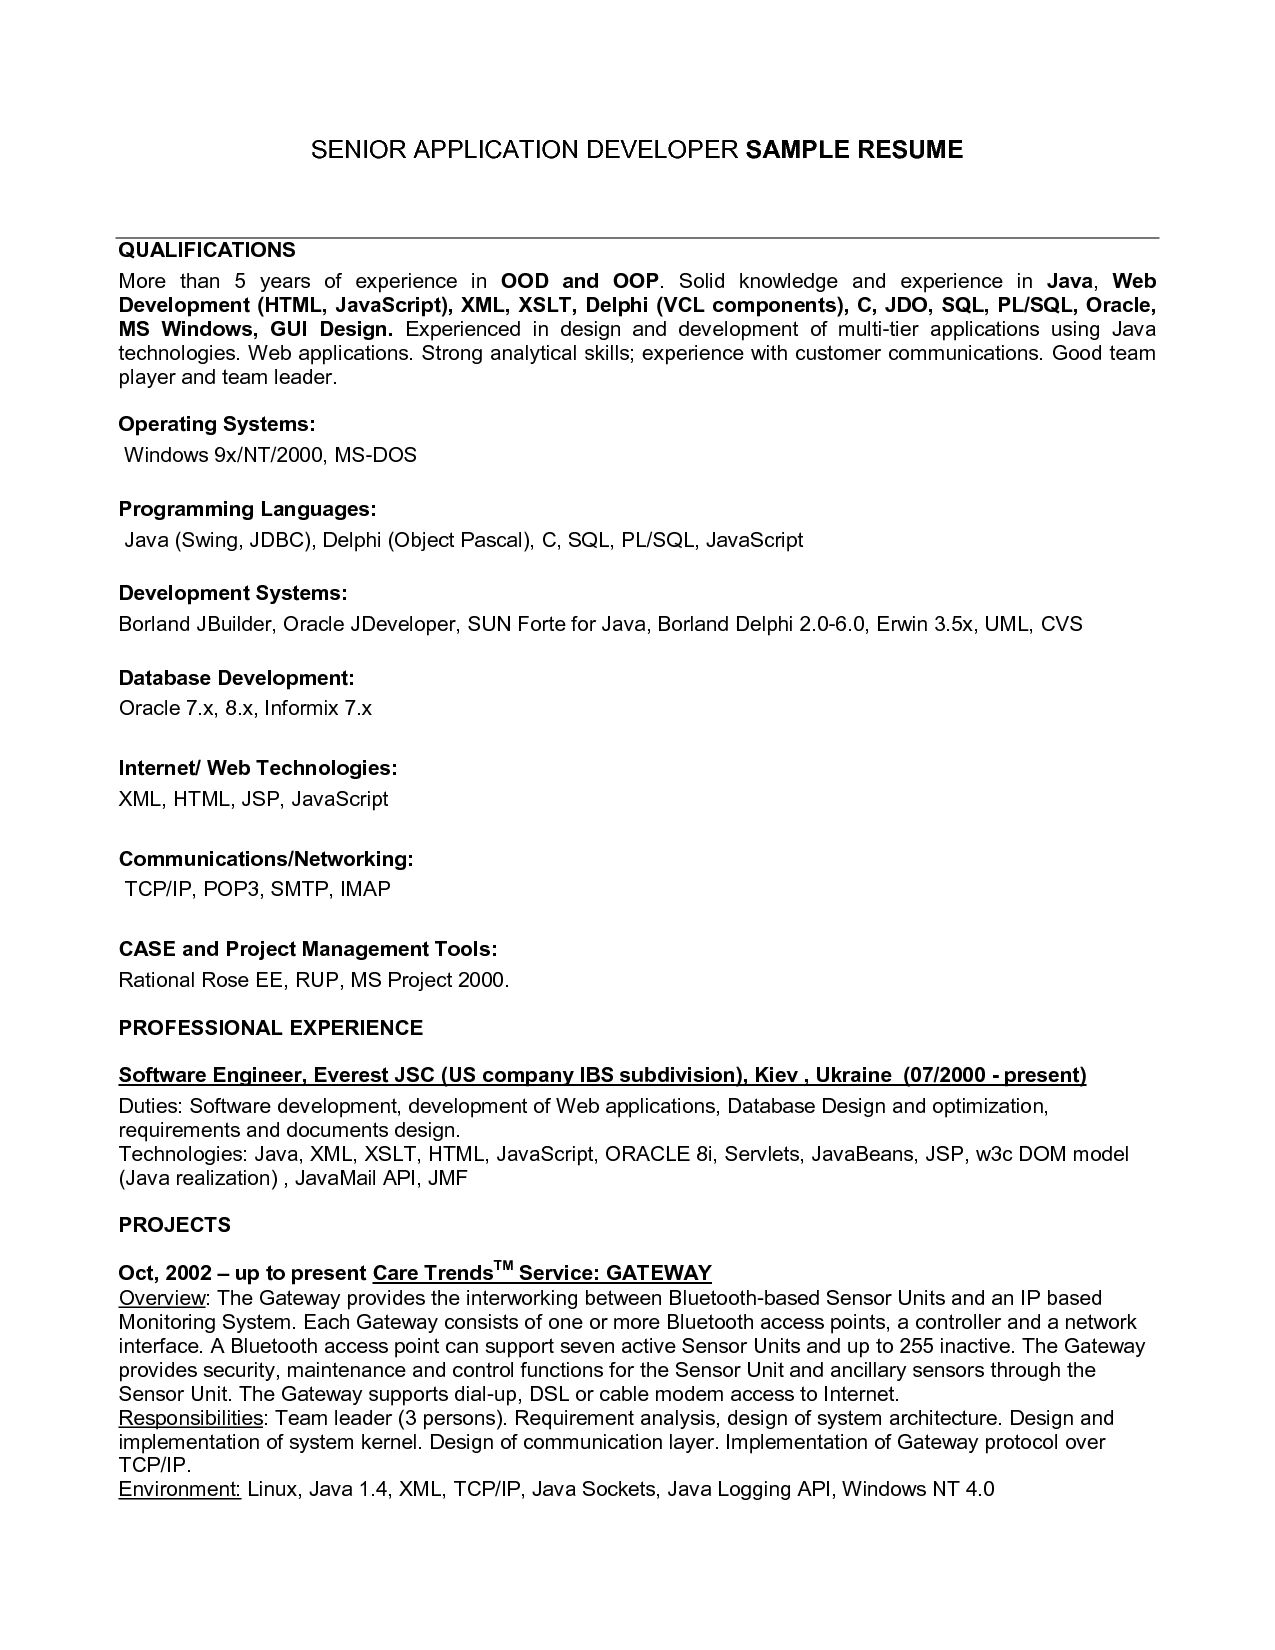 Resume Experience Example Qualifications For A Resume Examples 7F8Ea3A2A The Most Resume